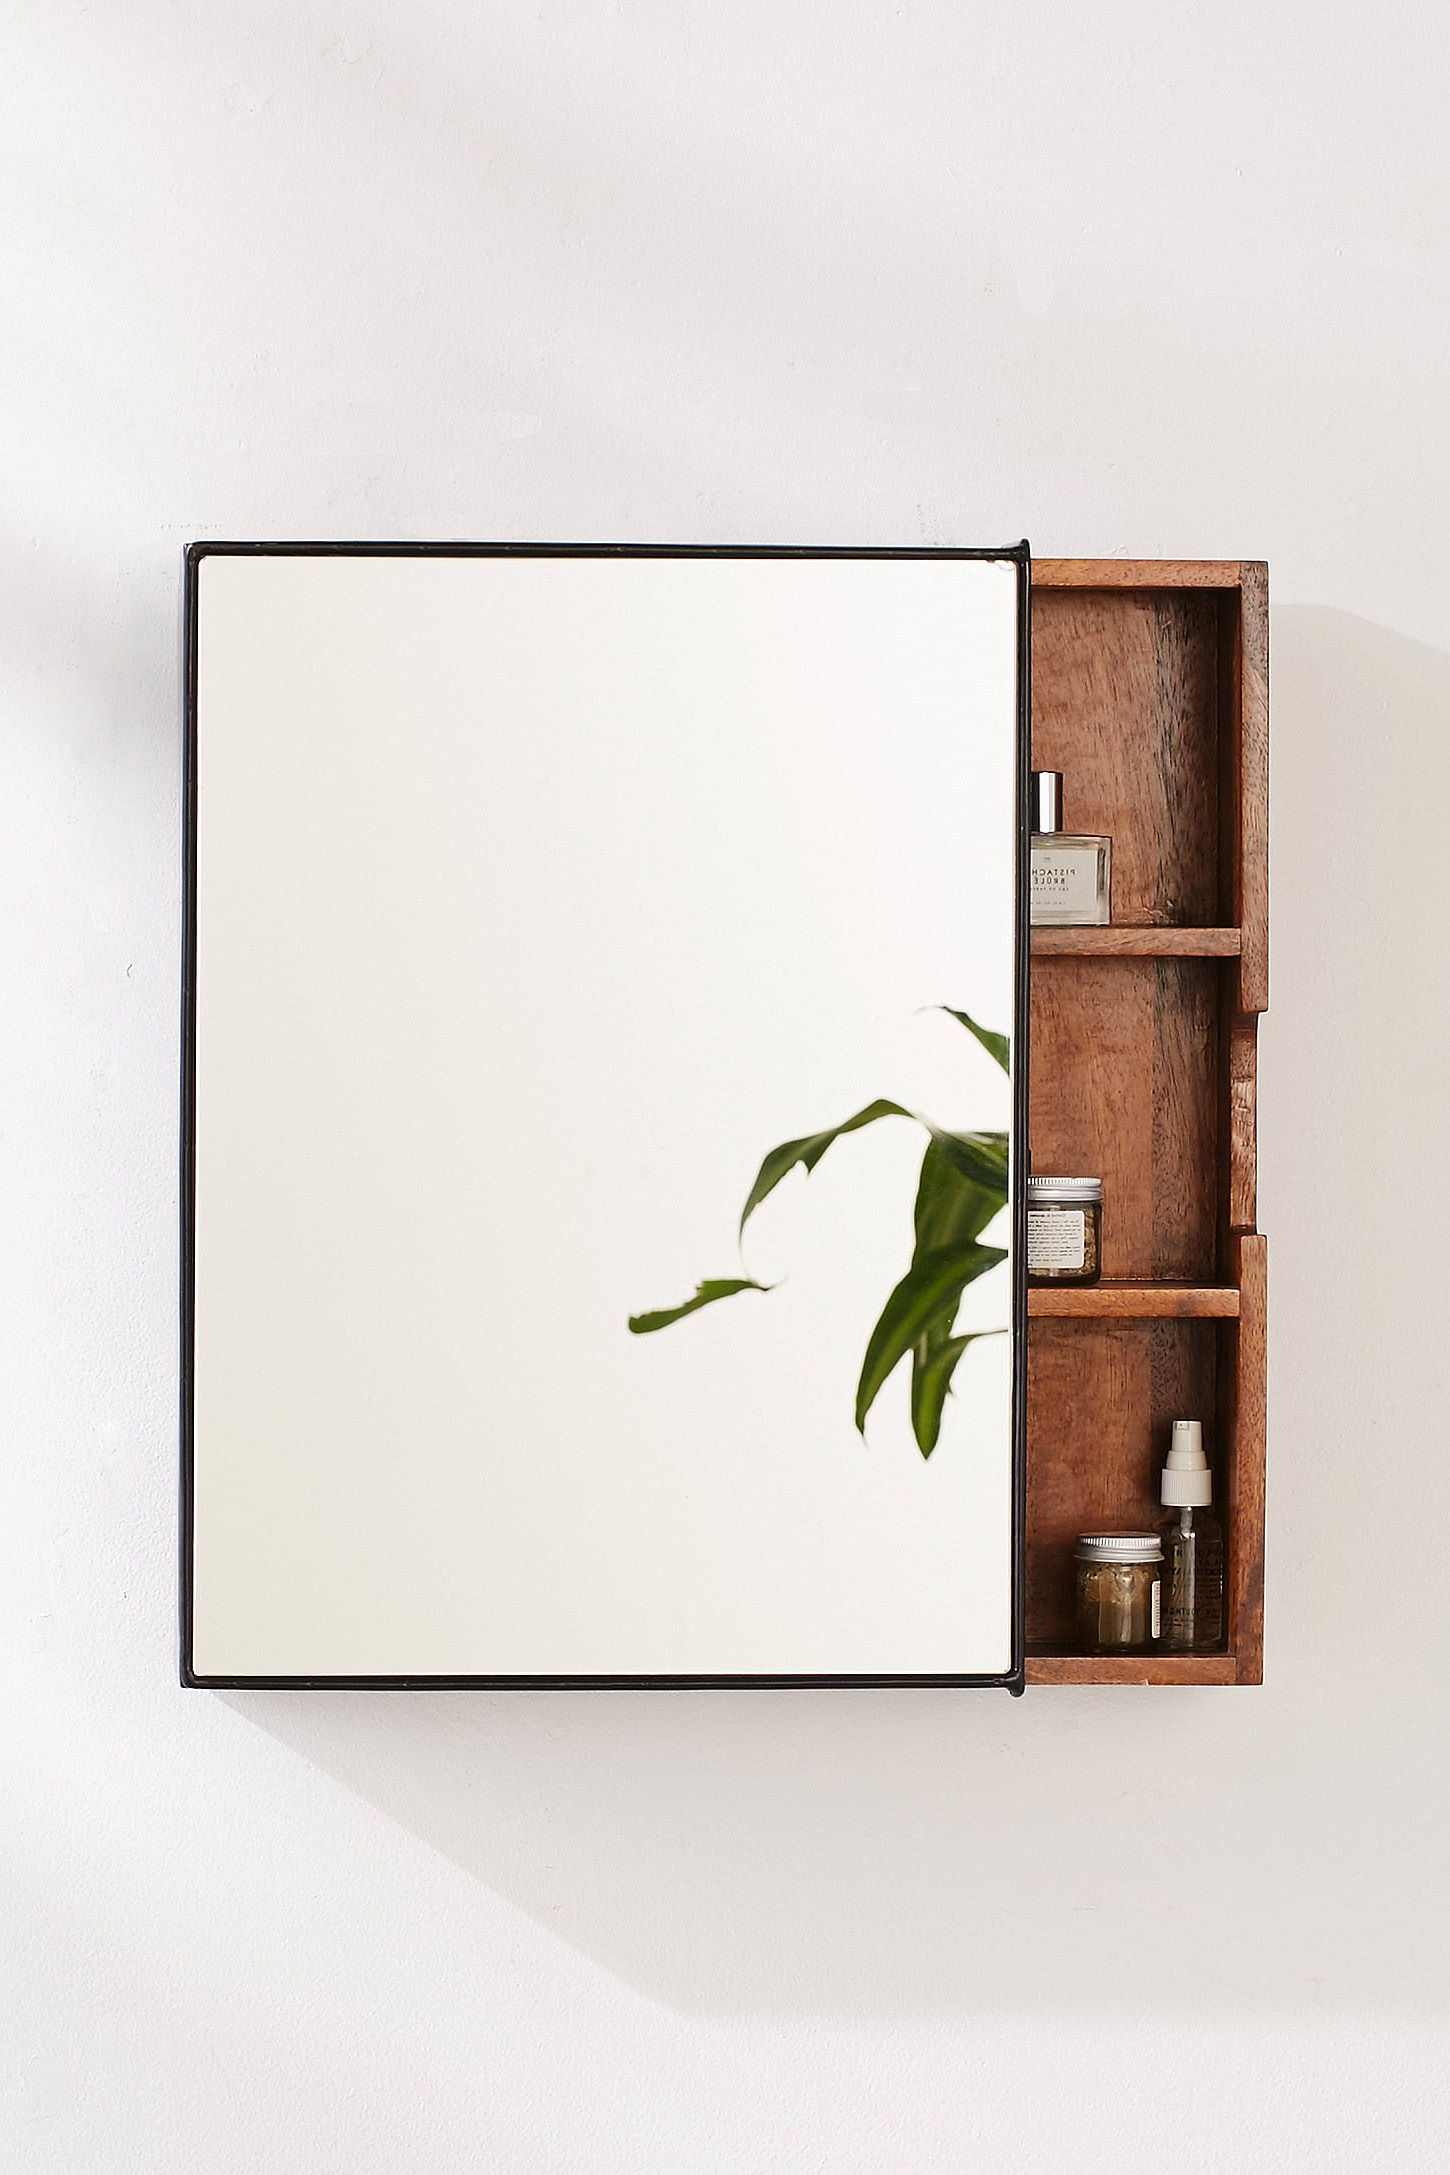 Bathroom Mirrorselle Intended For 2019 Wall Mirrors With Storages (View 5 of 20)